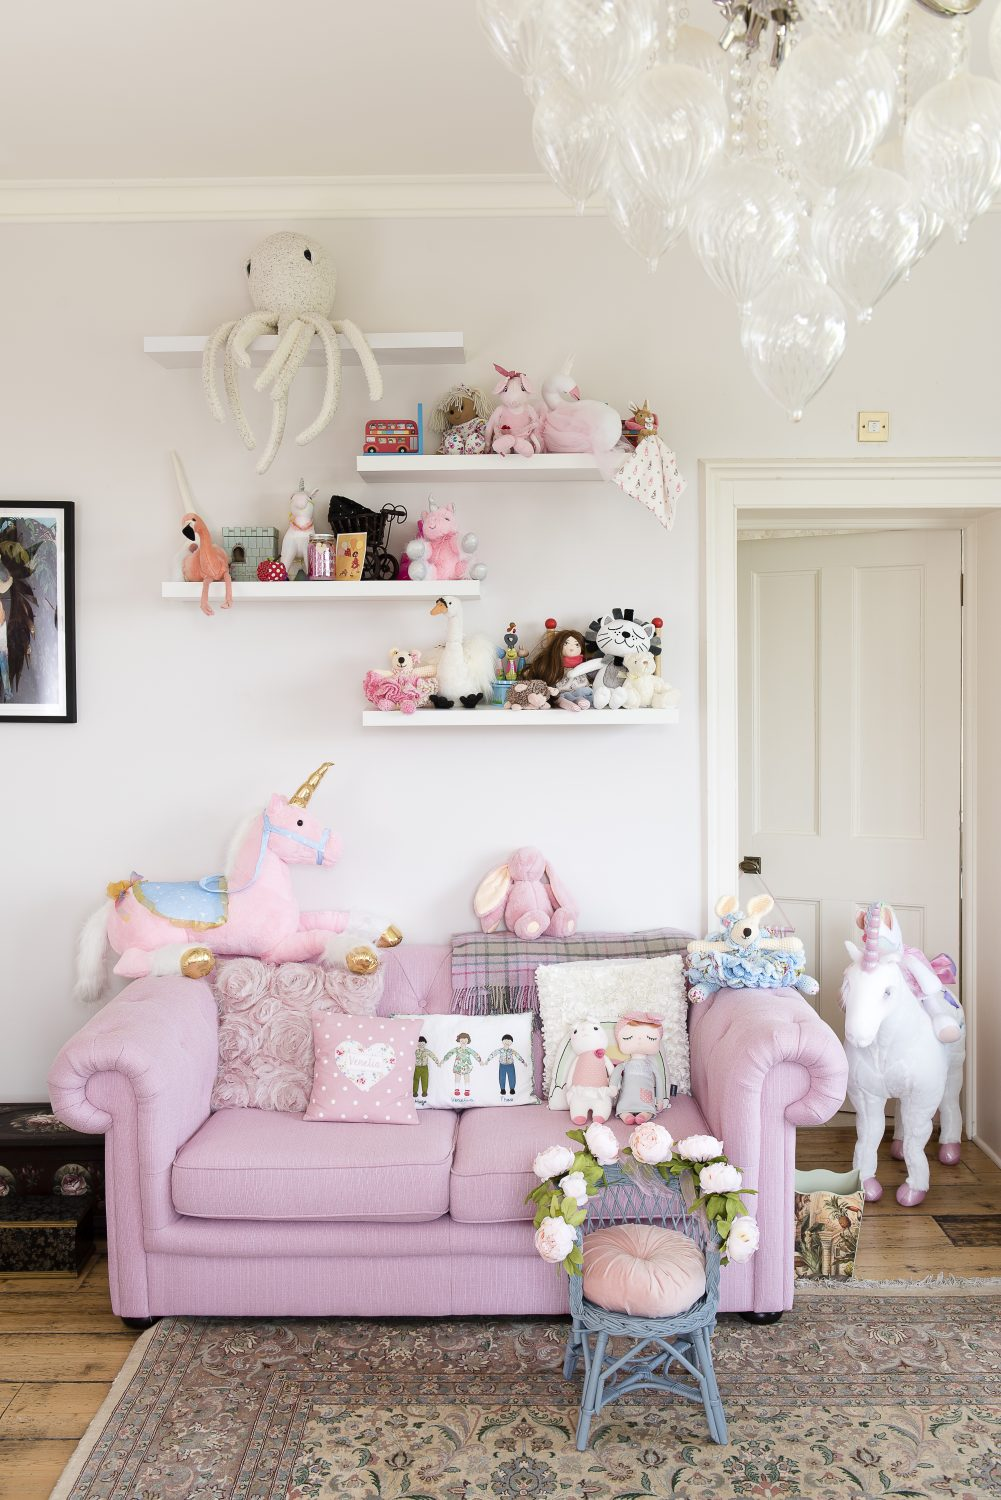 A pretty pink nursery for Chris and Lillie's new born daughter, complete with unicorns from Melissa & Doug